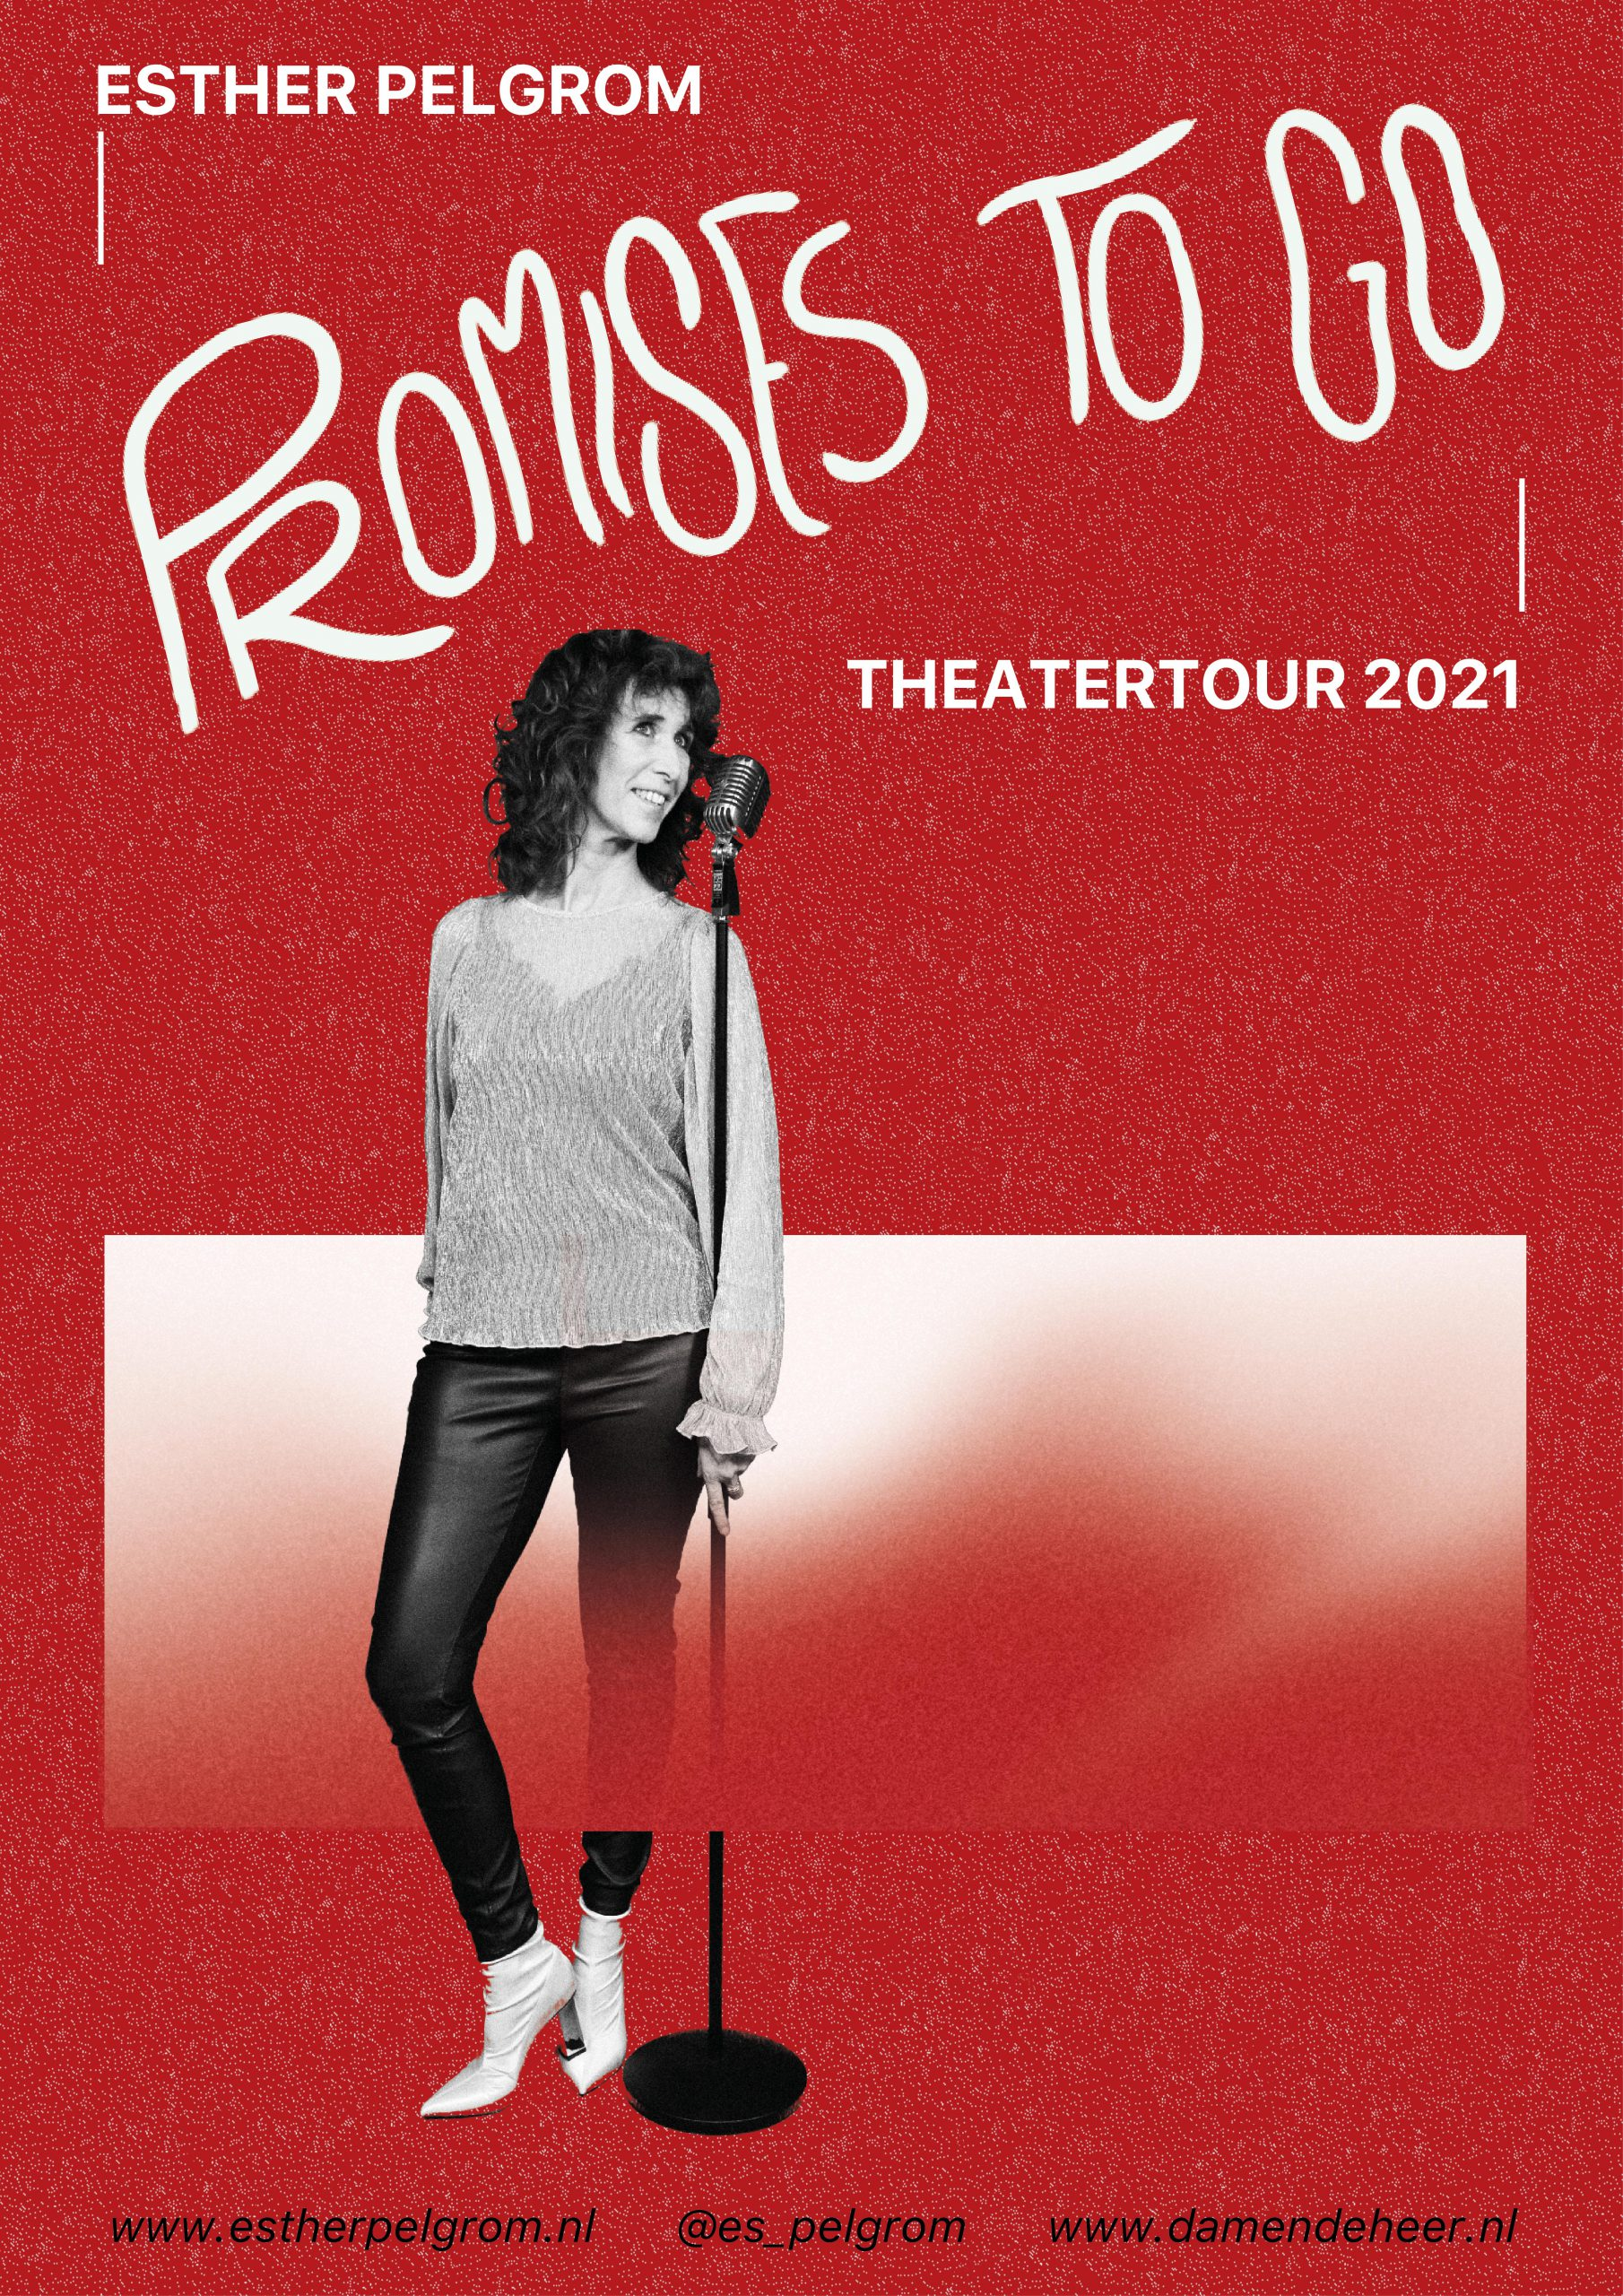 Esther Pelgrom – Promises to go (tryout)